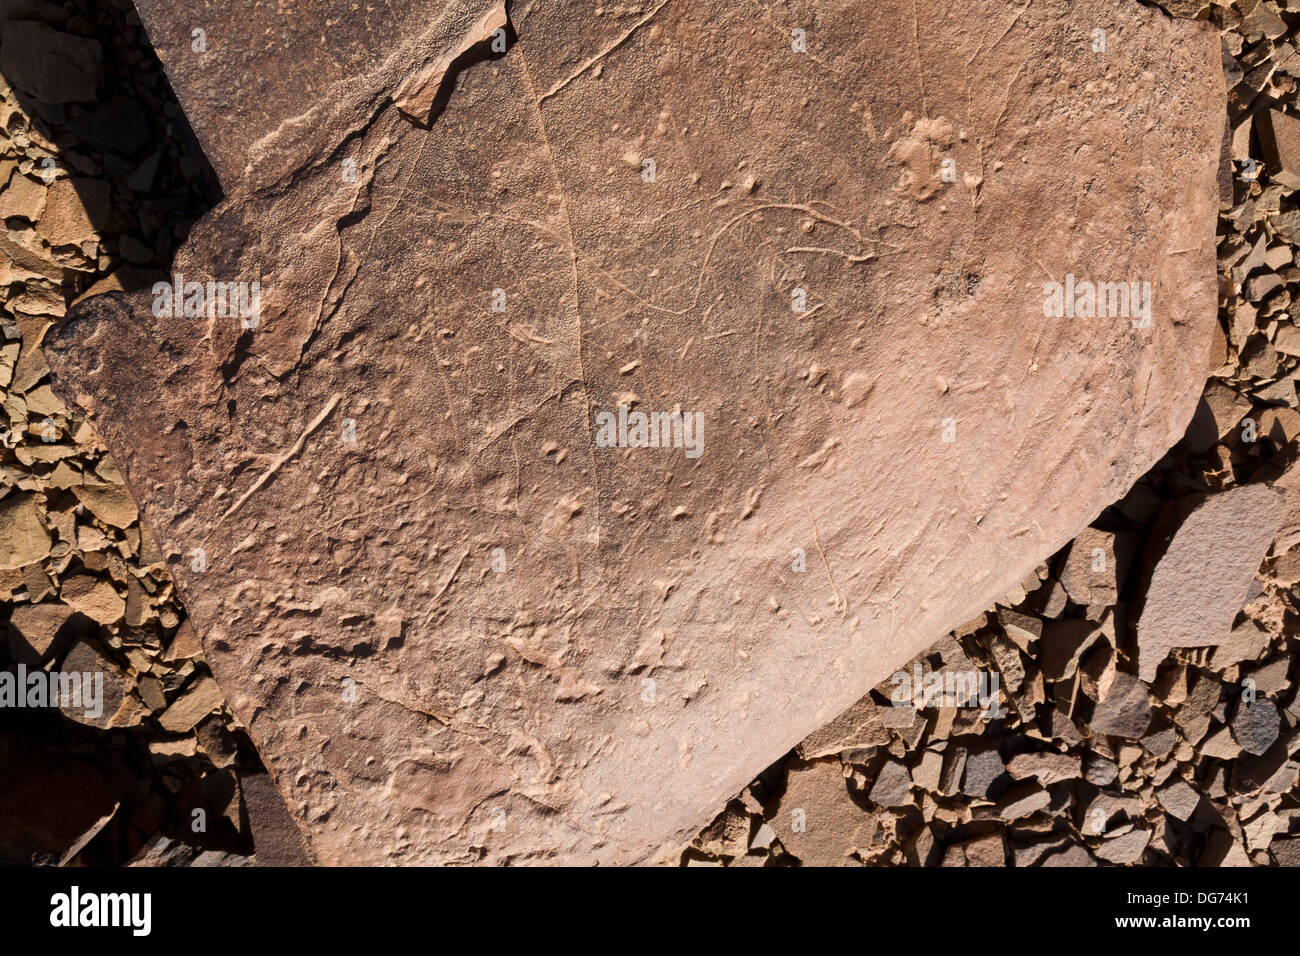 Prehistoric rock carvings at Aman Ighribin on the Tata to Akka road in Morocco - Stock Image